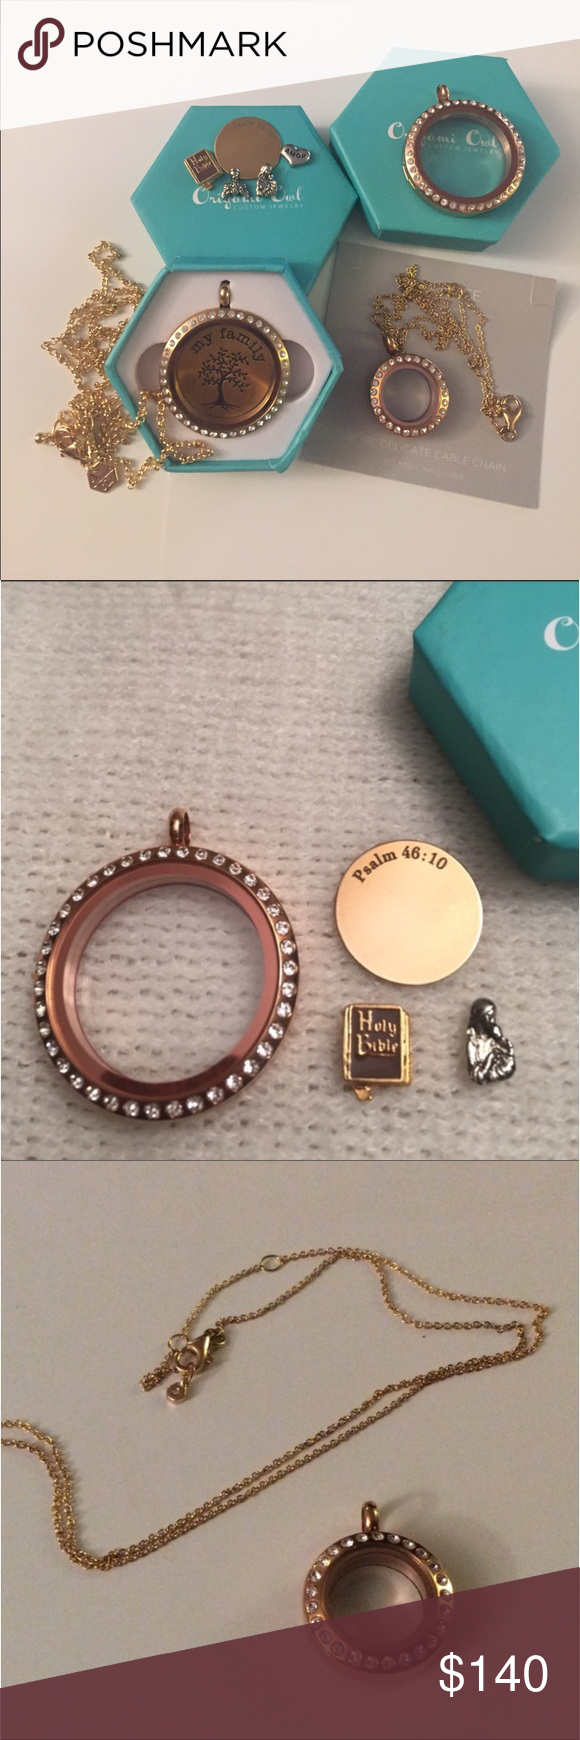 "Bundle of Origami Owl Bundle includes: 1 large locket (gold tone), 1 large locket (rose gold tone), 1 mini (tose gold tone), 1 large ""Family"" tree, 1 medium plate, 1 chain (16-18"" rose gold tone), 1 chain (30"" gold tone) 4 charms (bible, angel, amor, virgen Mary). All authentic pieces. Smoke and pet free home. Origami Owl Jewelry"